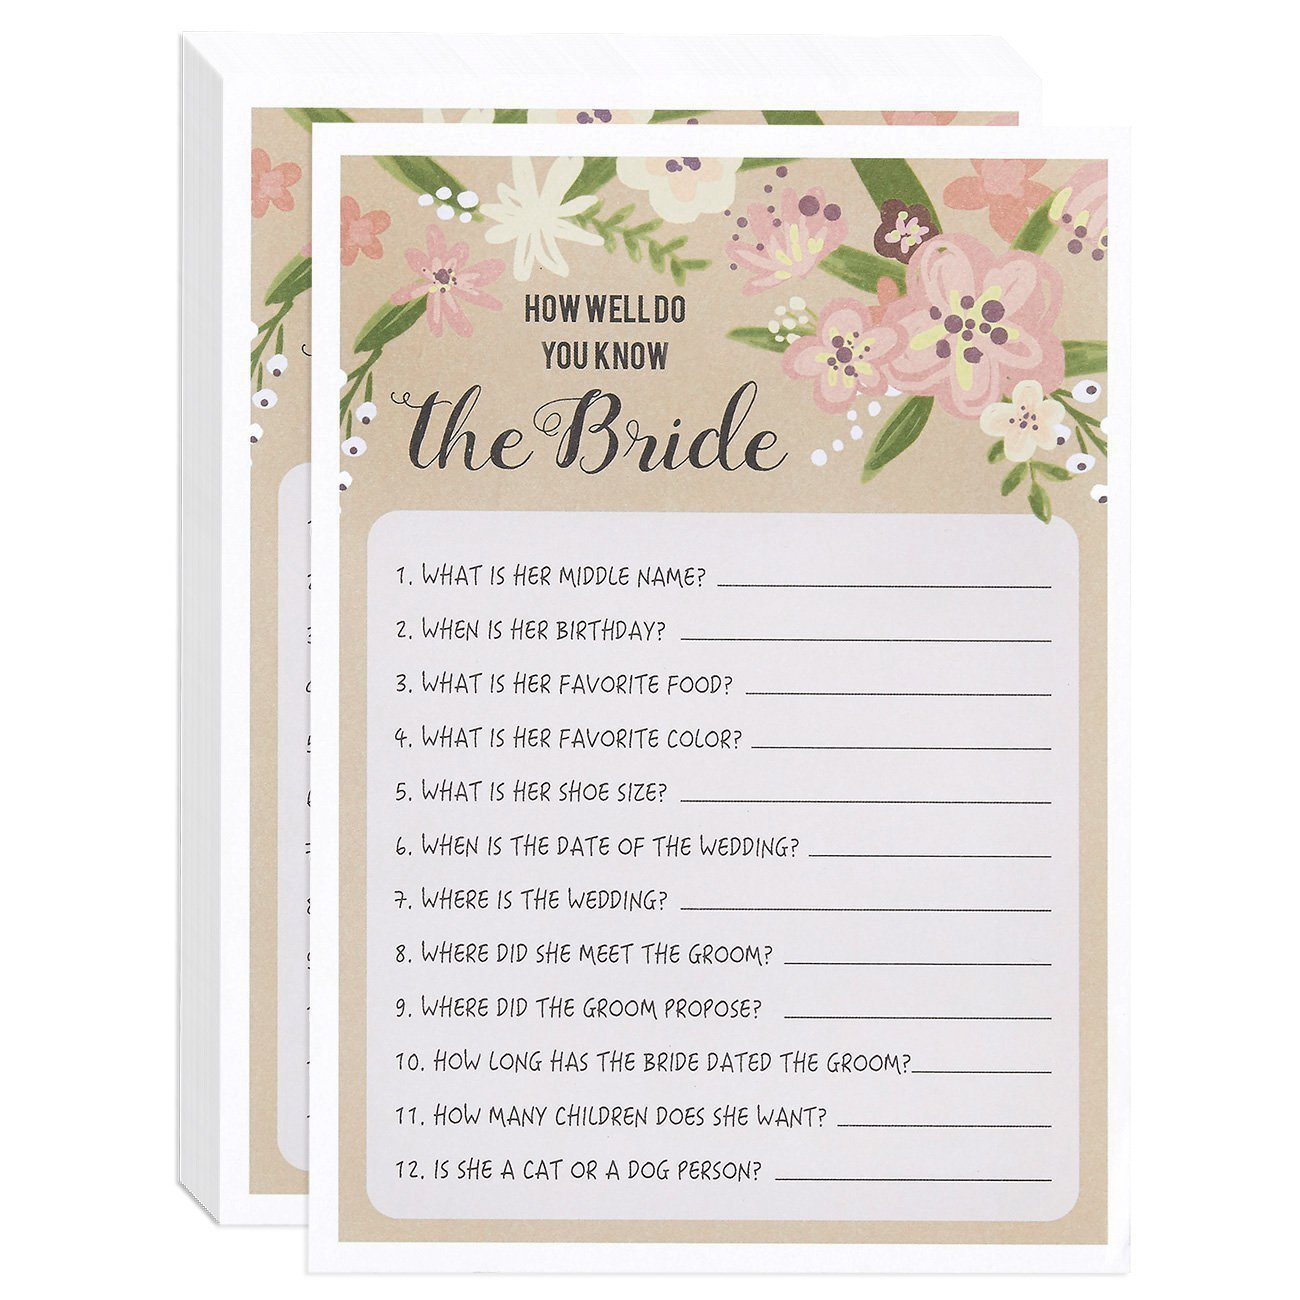 6fa197c10c0 Floral Bridal Shower Games - How Well Do You Know The Bride